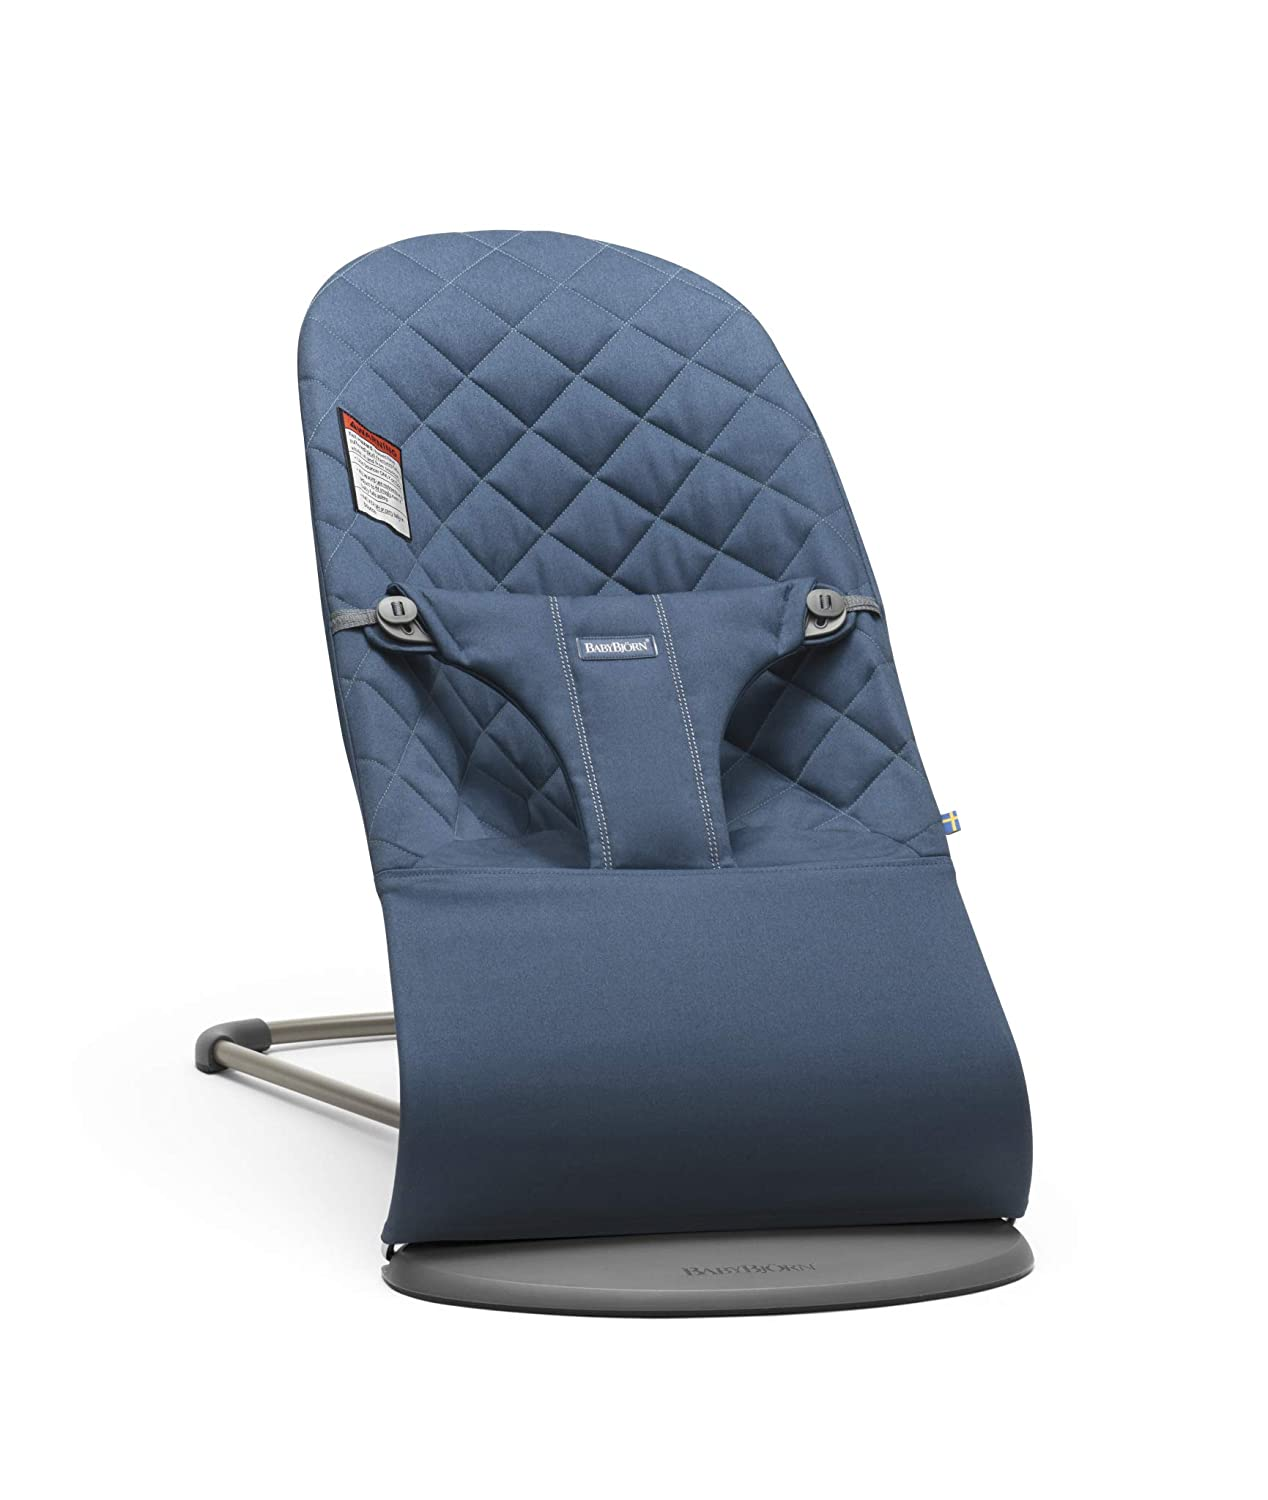 BABYBJORN Bouncer Bliss, Midnight Blue, Cotton